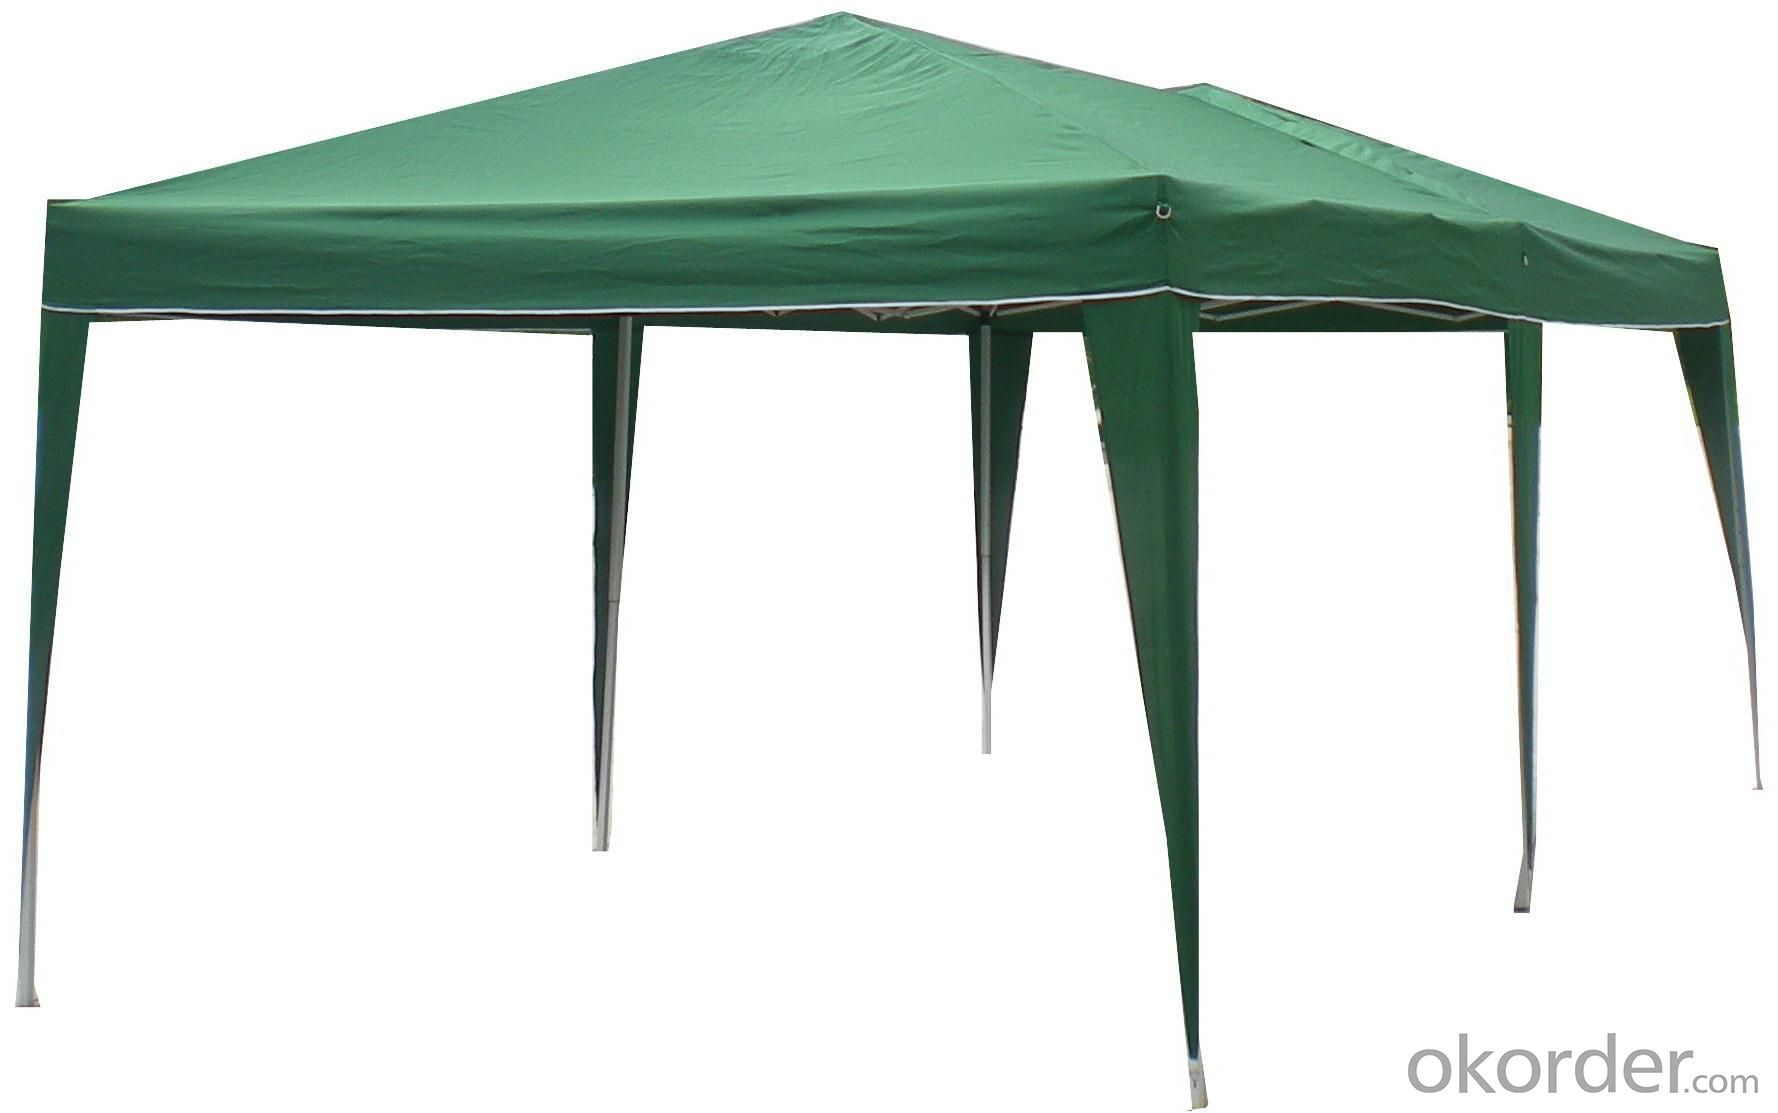 Hot Selling Outdoor Market Umbrella Full Iron Folding Dark Green Tent